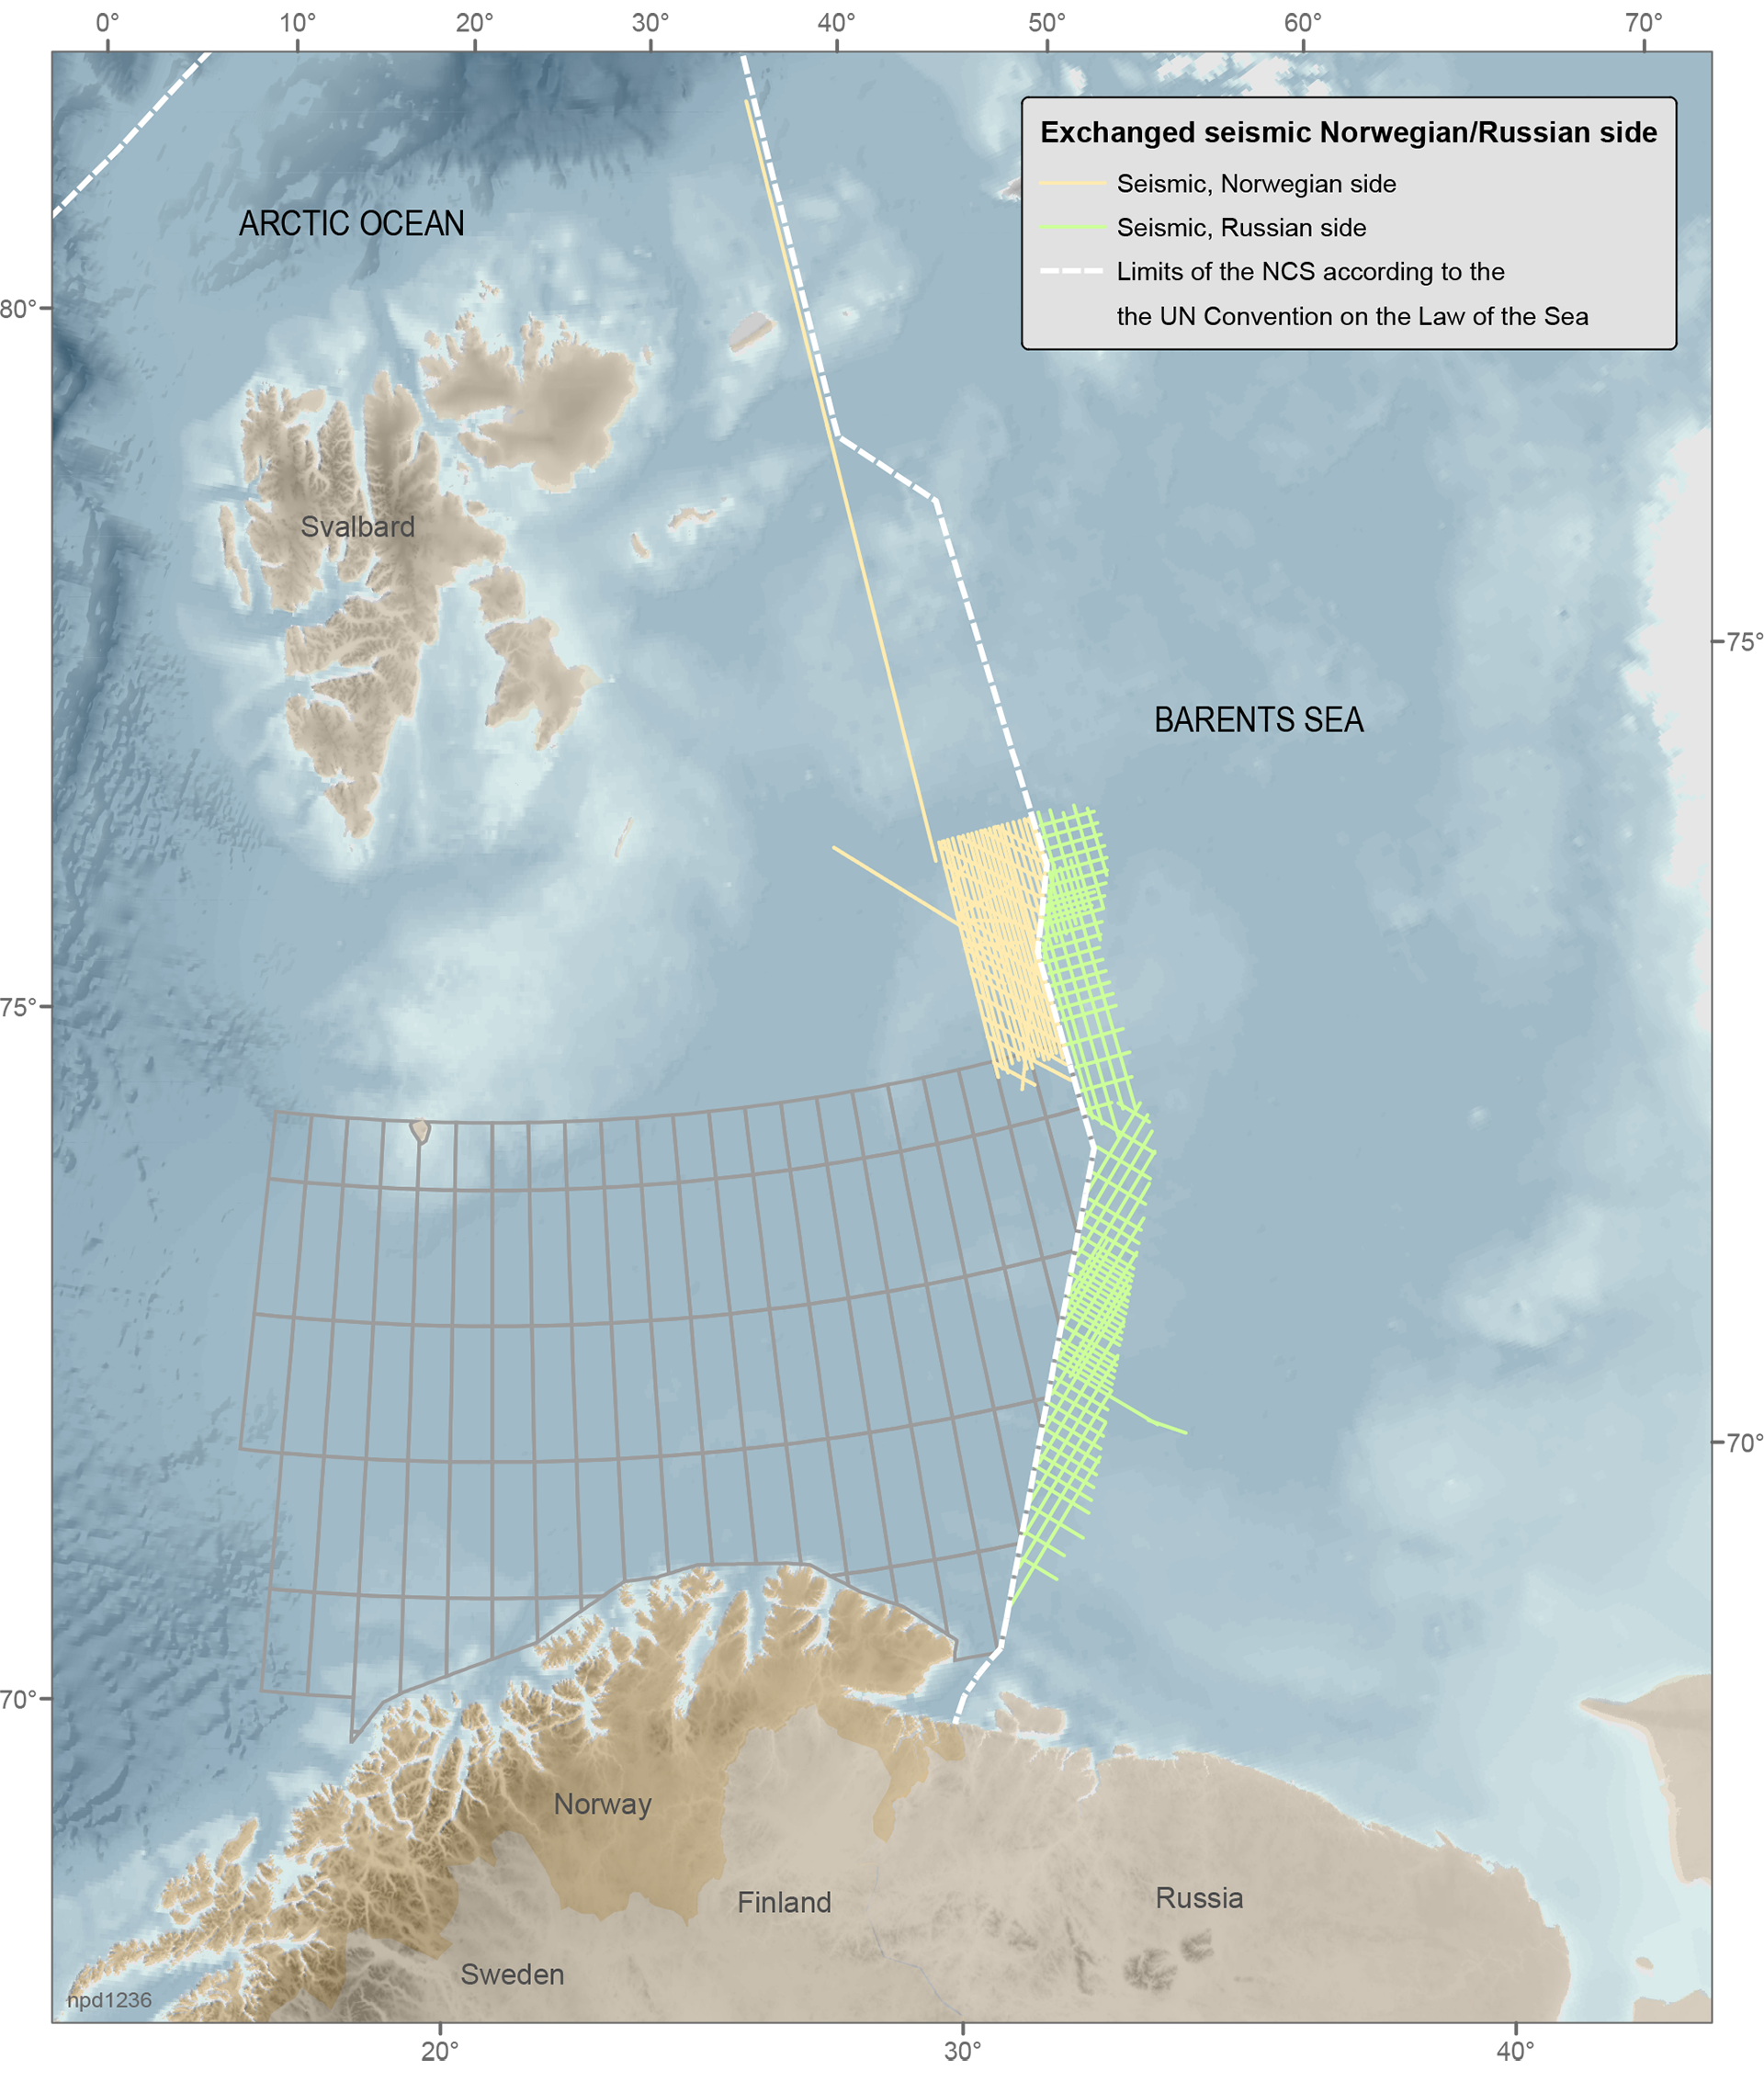 Russia and Norway to exchange seismic data from the Barents Sea